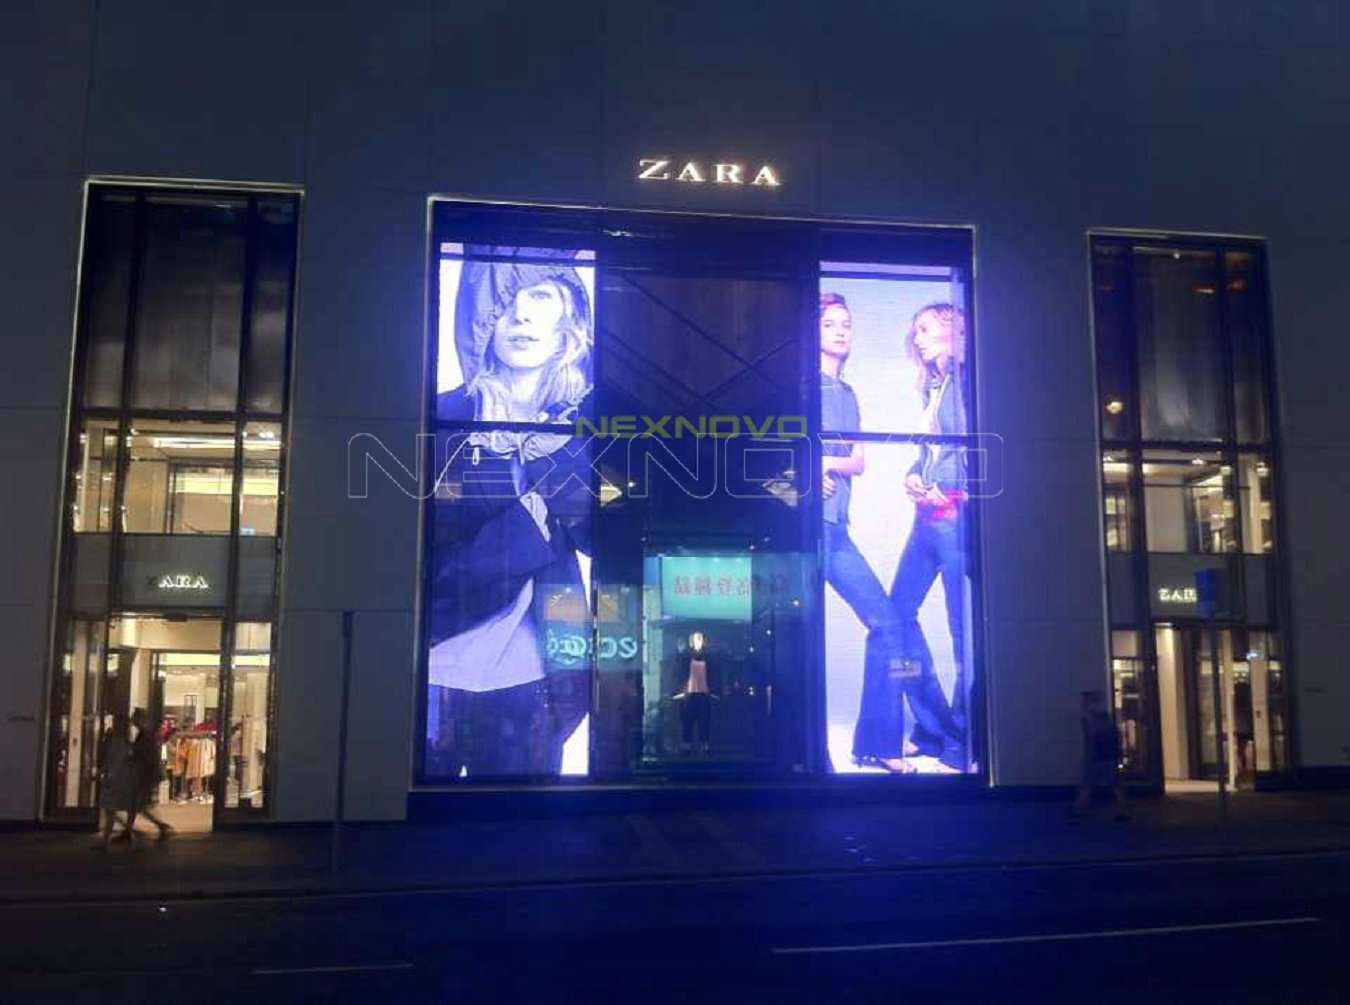 Hong Kong ZARA flagship transparent LED display project